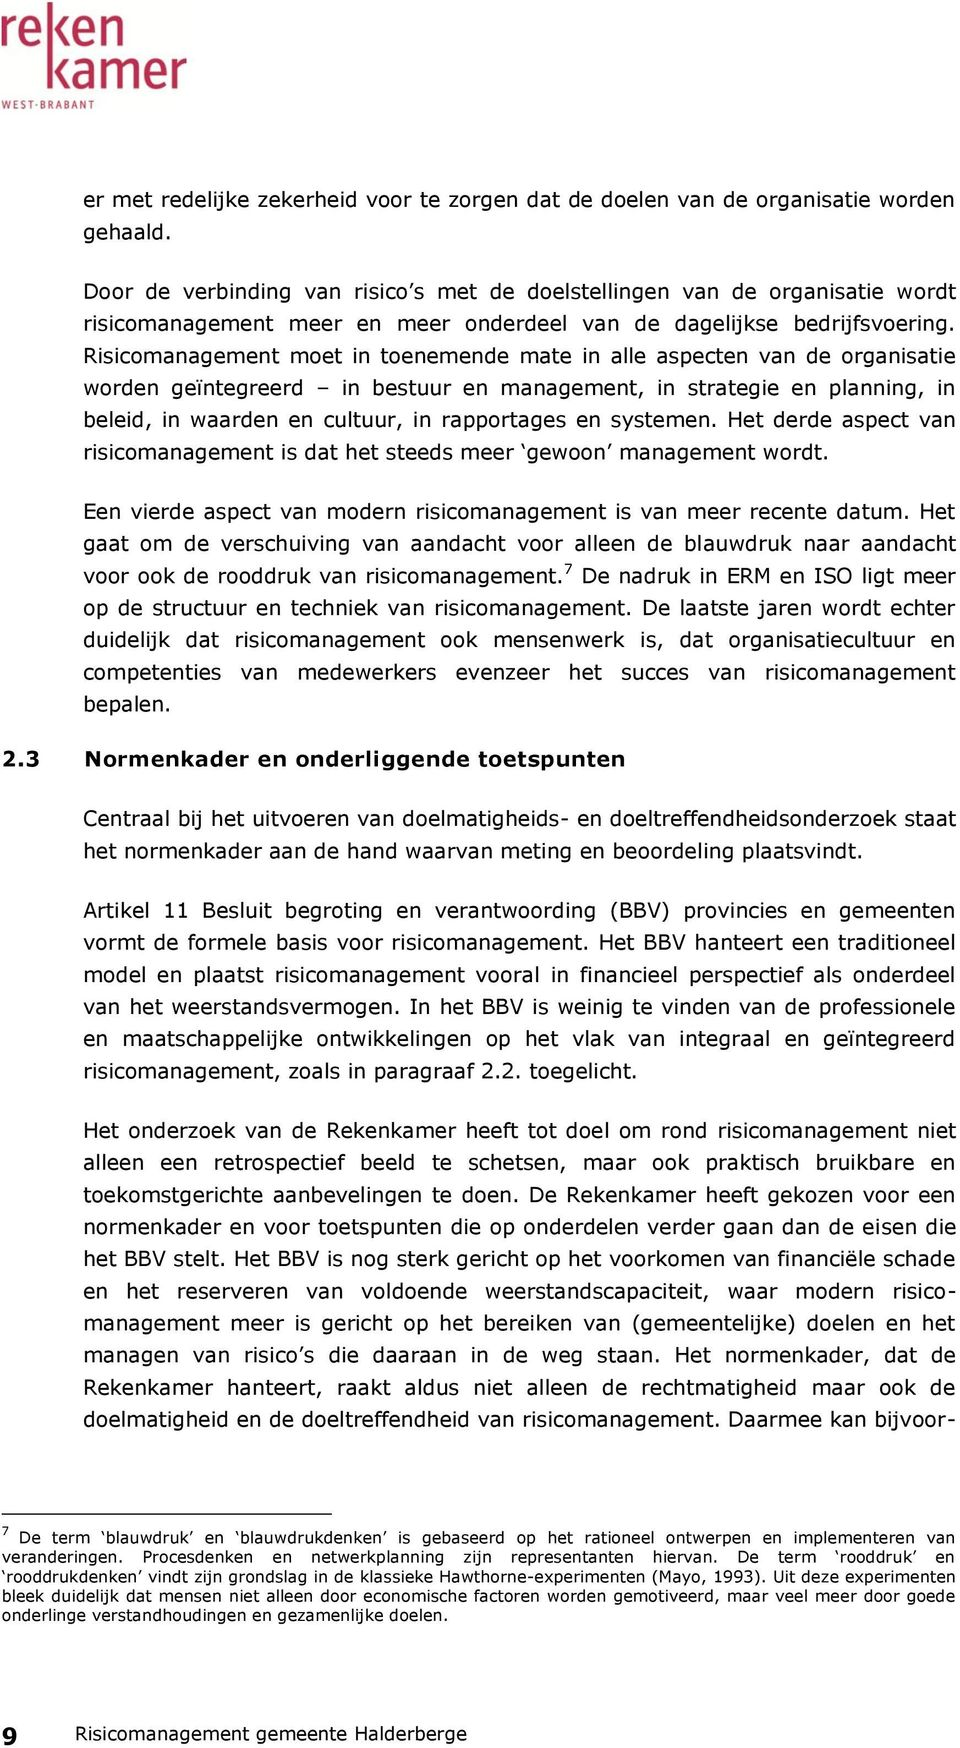 Risicomanagement moet in toenemende mate in alle aspecten van de organisatie worden geïntegreerd in bestuur en management, in strategie en planning, in beleid, in waarden en cultuur, in rapportages